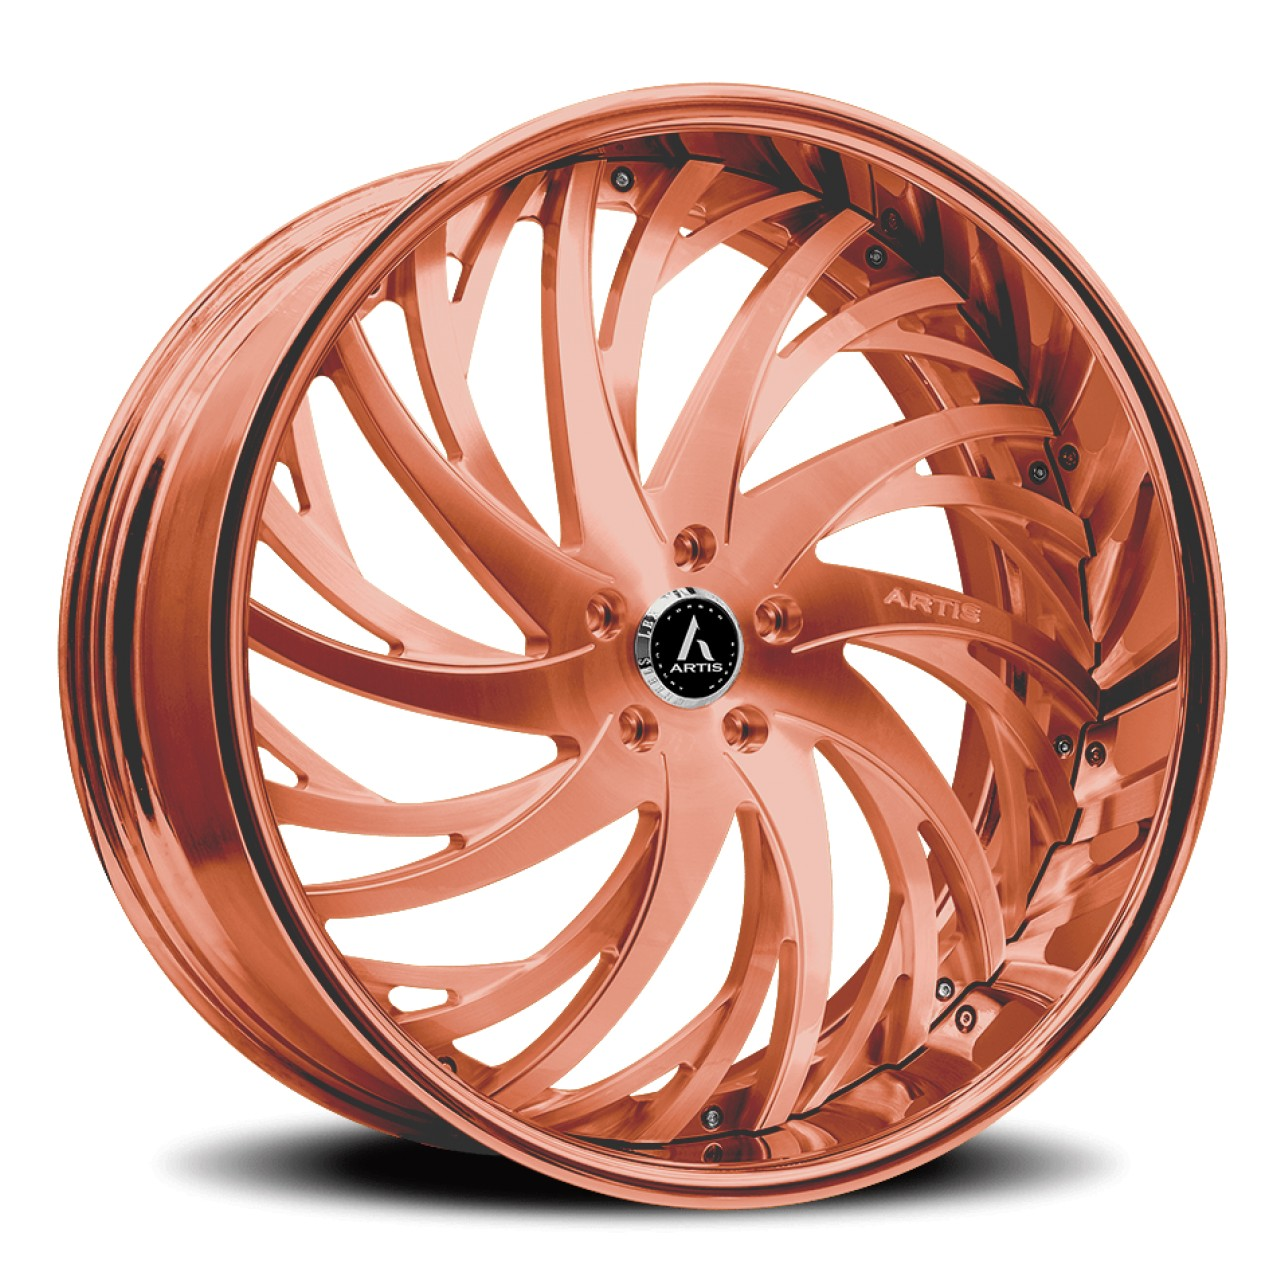 Artis Forged Decatur wheel with Rose Gold finish